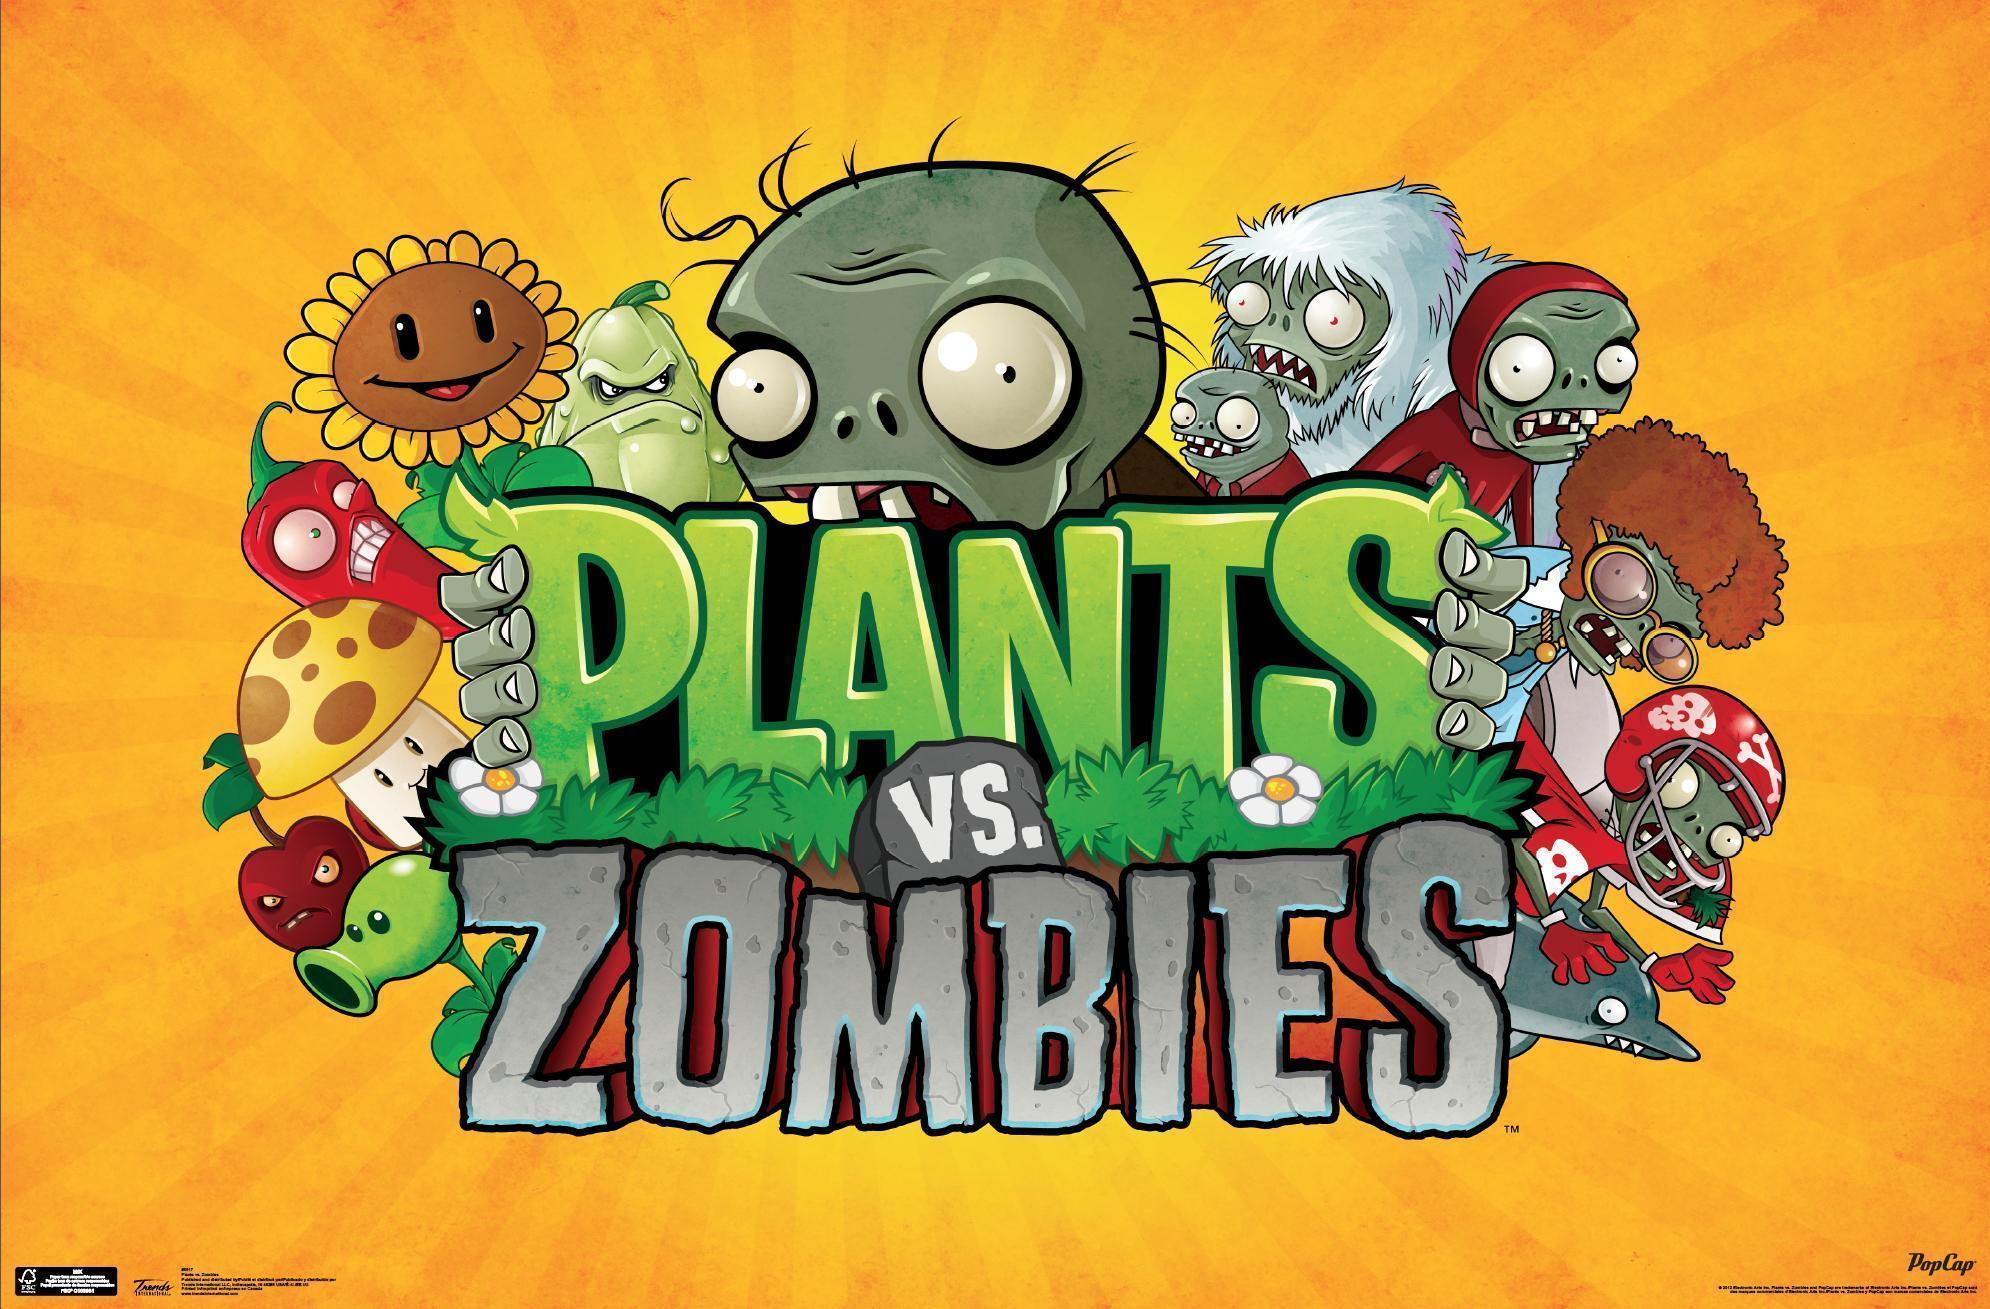 Plants vs zombies wallpapers wallpaper cave search results desktop wallpaper plants vs zombies 2560 x 1920 download toneelgroepblik Image collections